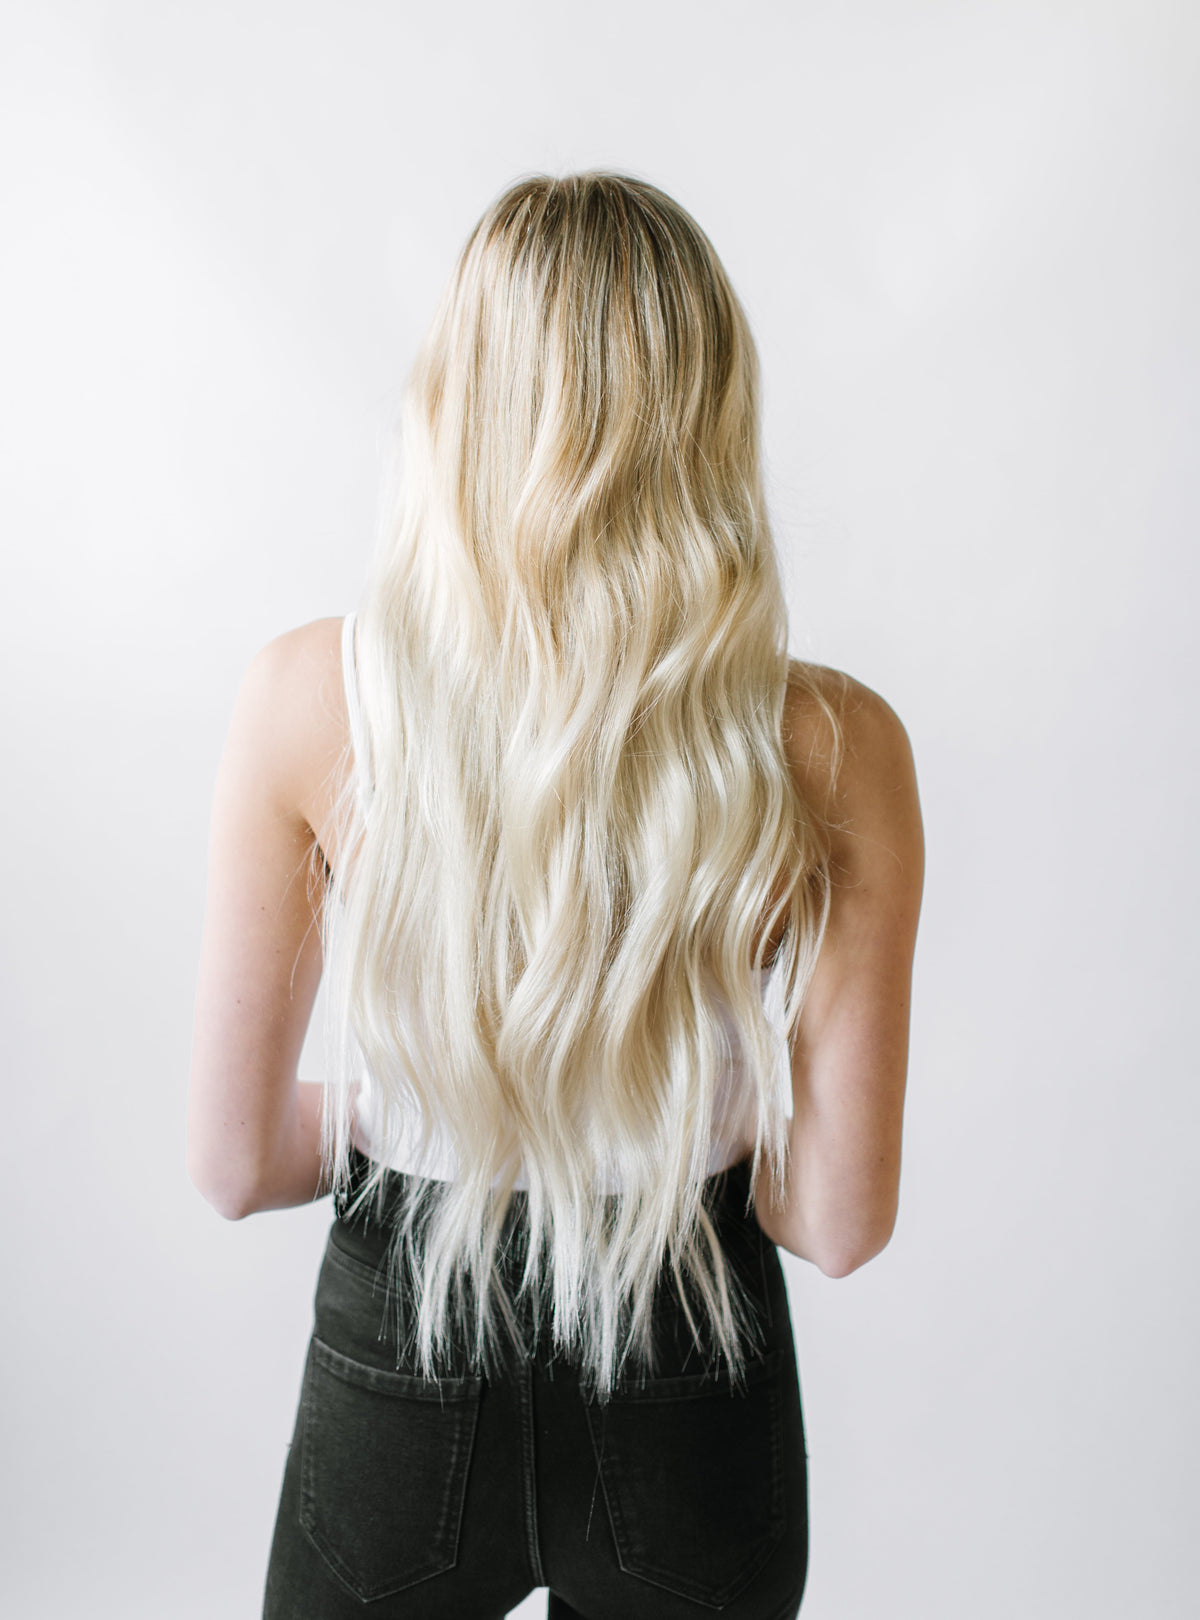 Laced Hair Keratin Bond Extensions #60 (Platinum)